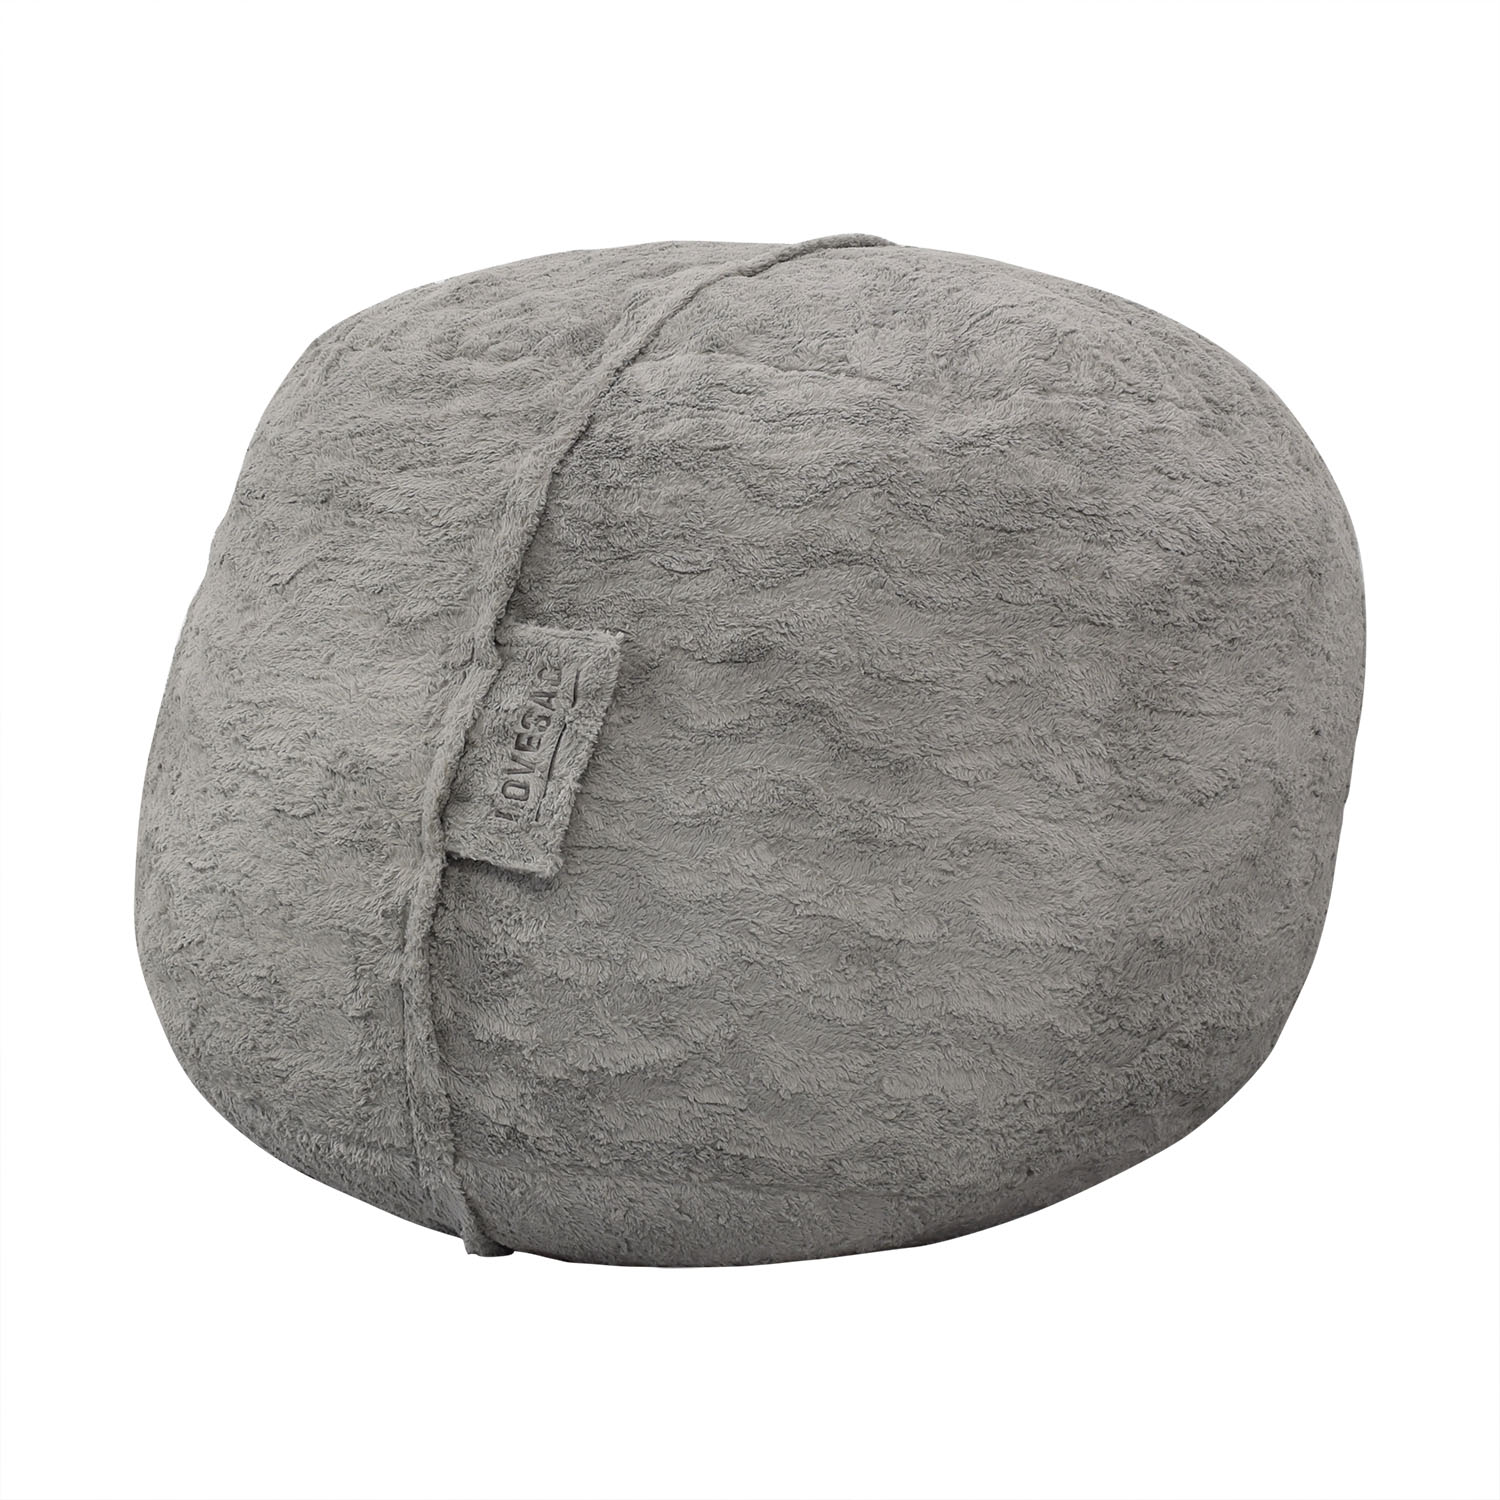 Pleasing 73 Off Lovesac Lovesac Giant Bean Bag Chair Chairs Pdpeps Interior Chair Design Pdpepsorg